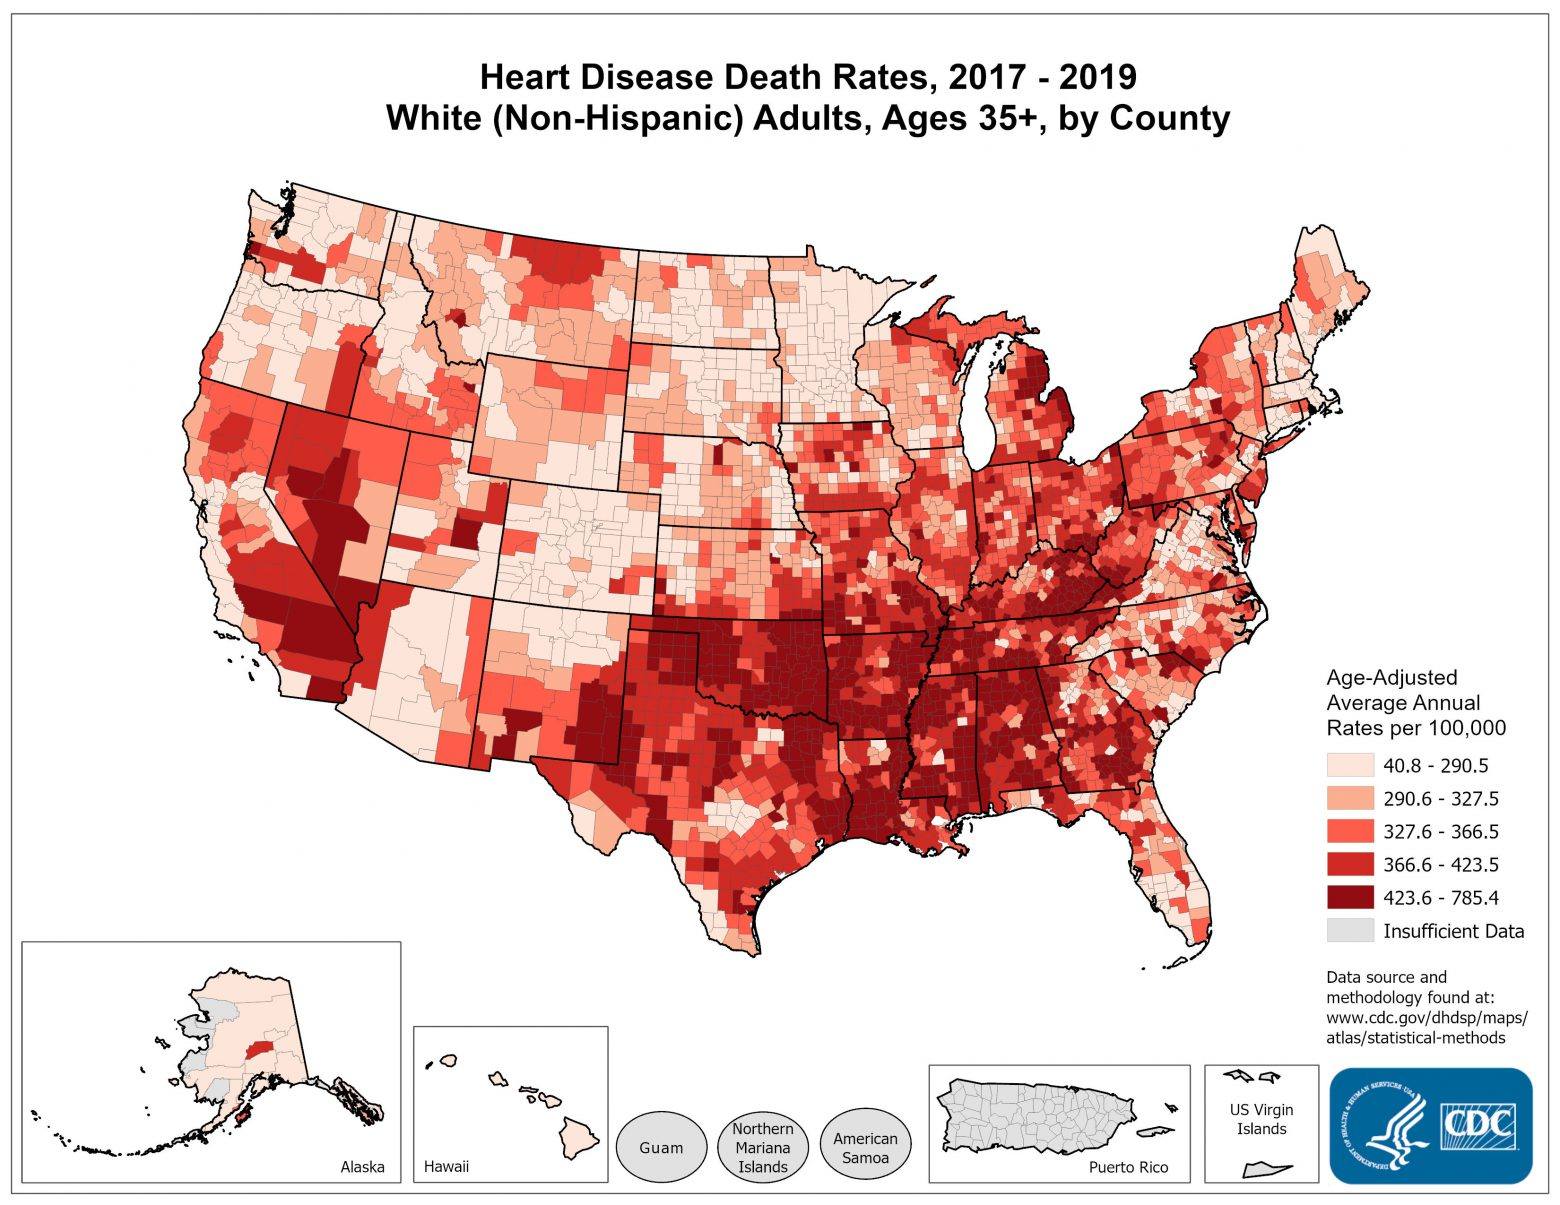 Heart Disease Death Rates for 2012 through 2014 for Whites Aged 35 Years and Older by County. The map shows that concentrations of counties with the highest heart disease death rates - meaning the top quintile - are located primarily in Alabama, Mississippi, Louisiana, Arkansas, Oklahoma, Kentucky, and Tennessee.  Pockets of high-rate counties also were found in Georgia, South Carolina, Missouri, California, Nevada, Texas, and New Mexico.